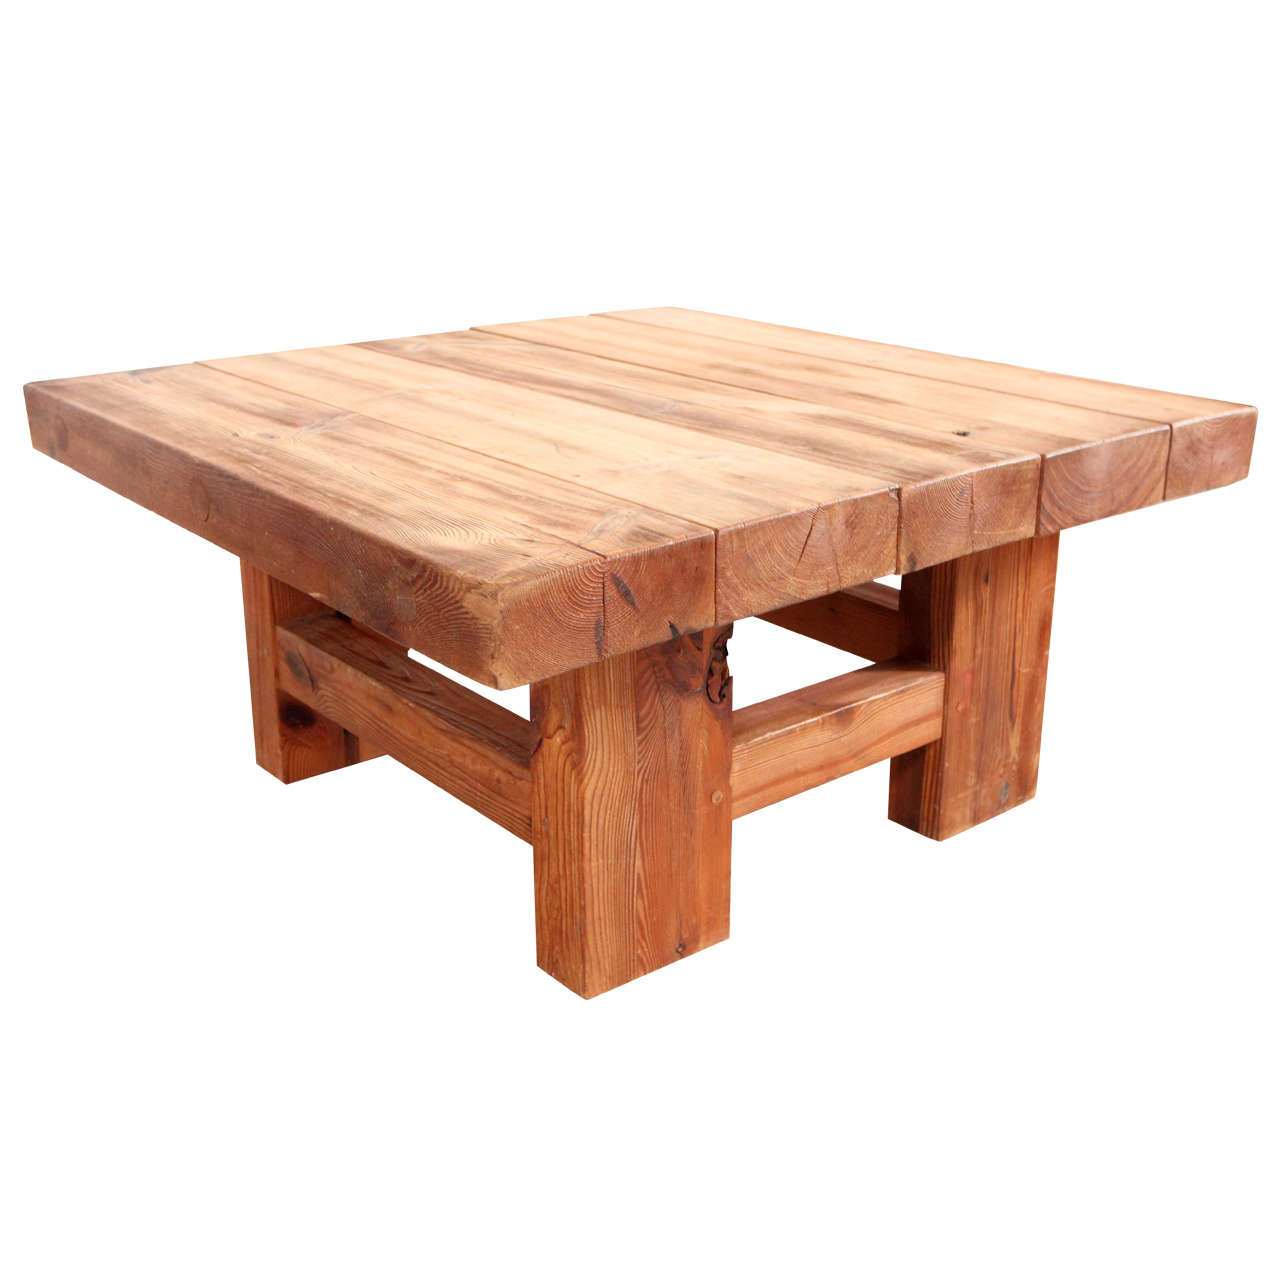 Rustic Wood Block Square Coffee Table 1. Rustic Wood Block Square Coffee Table at 1stdibs